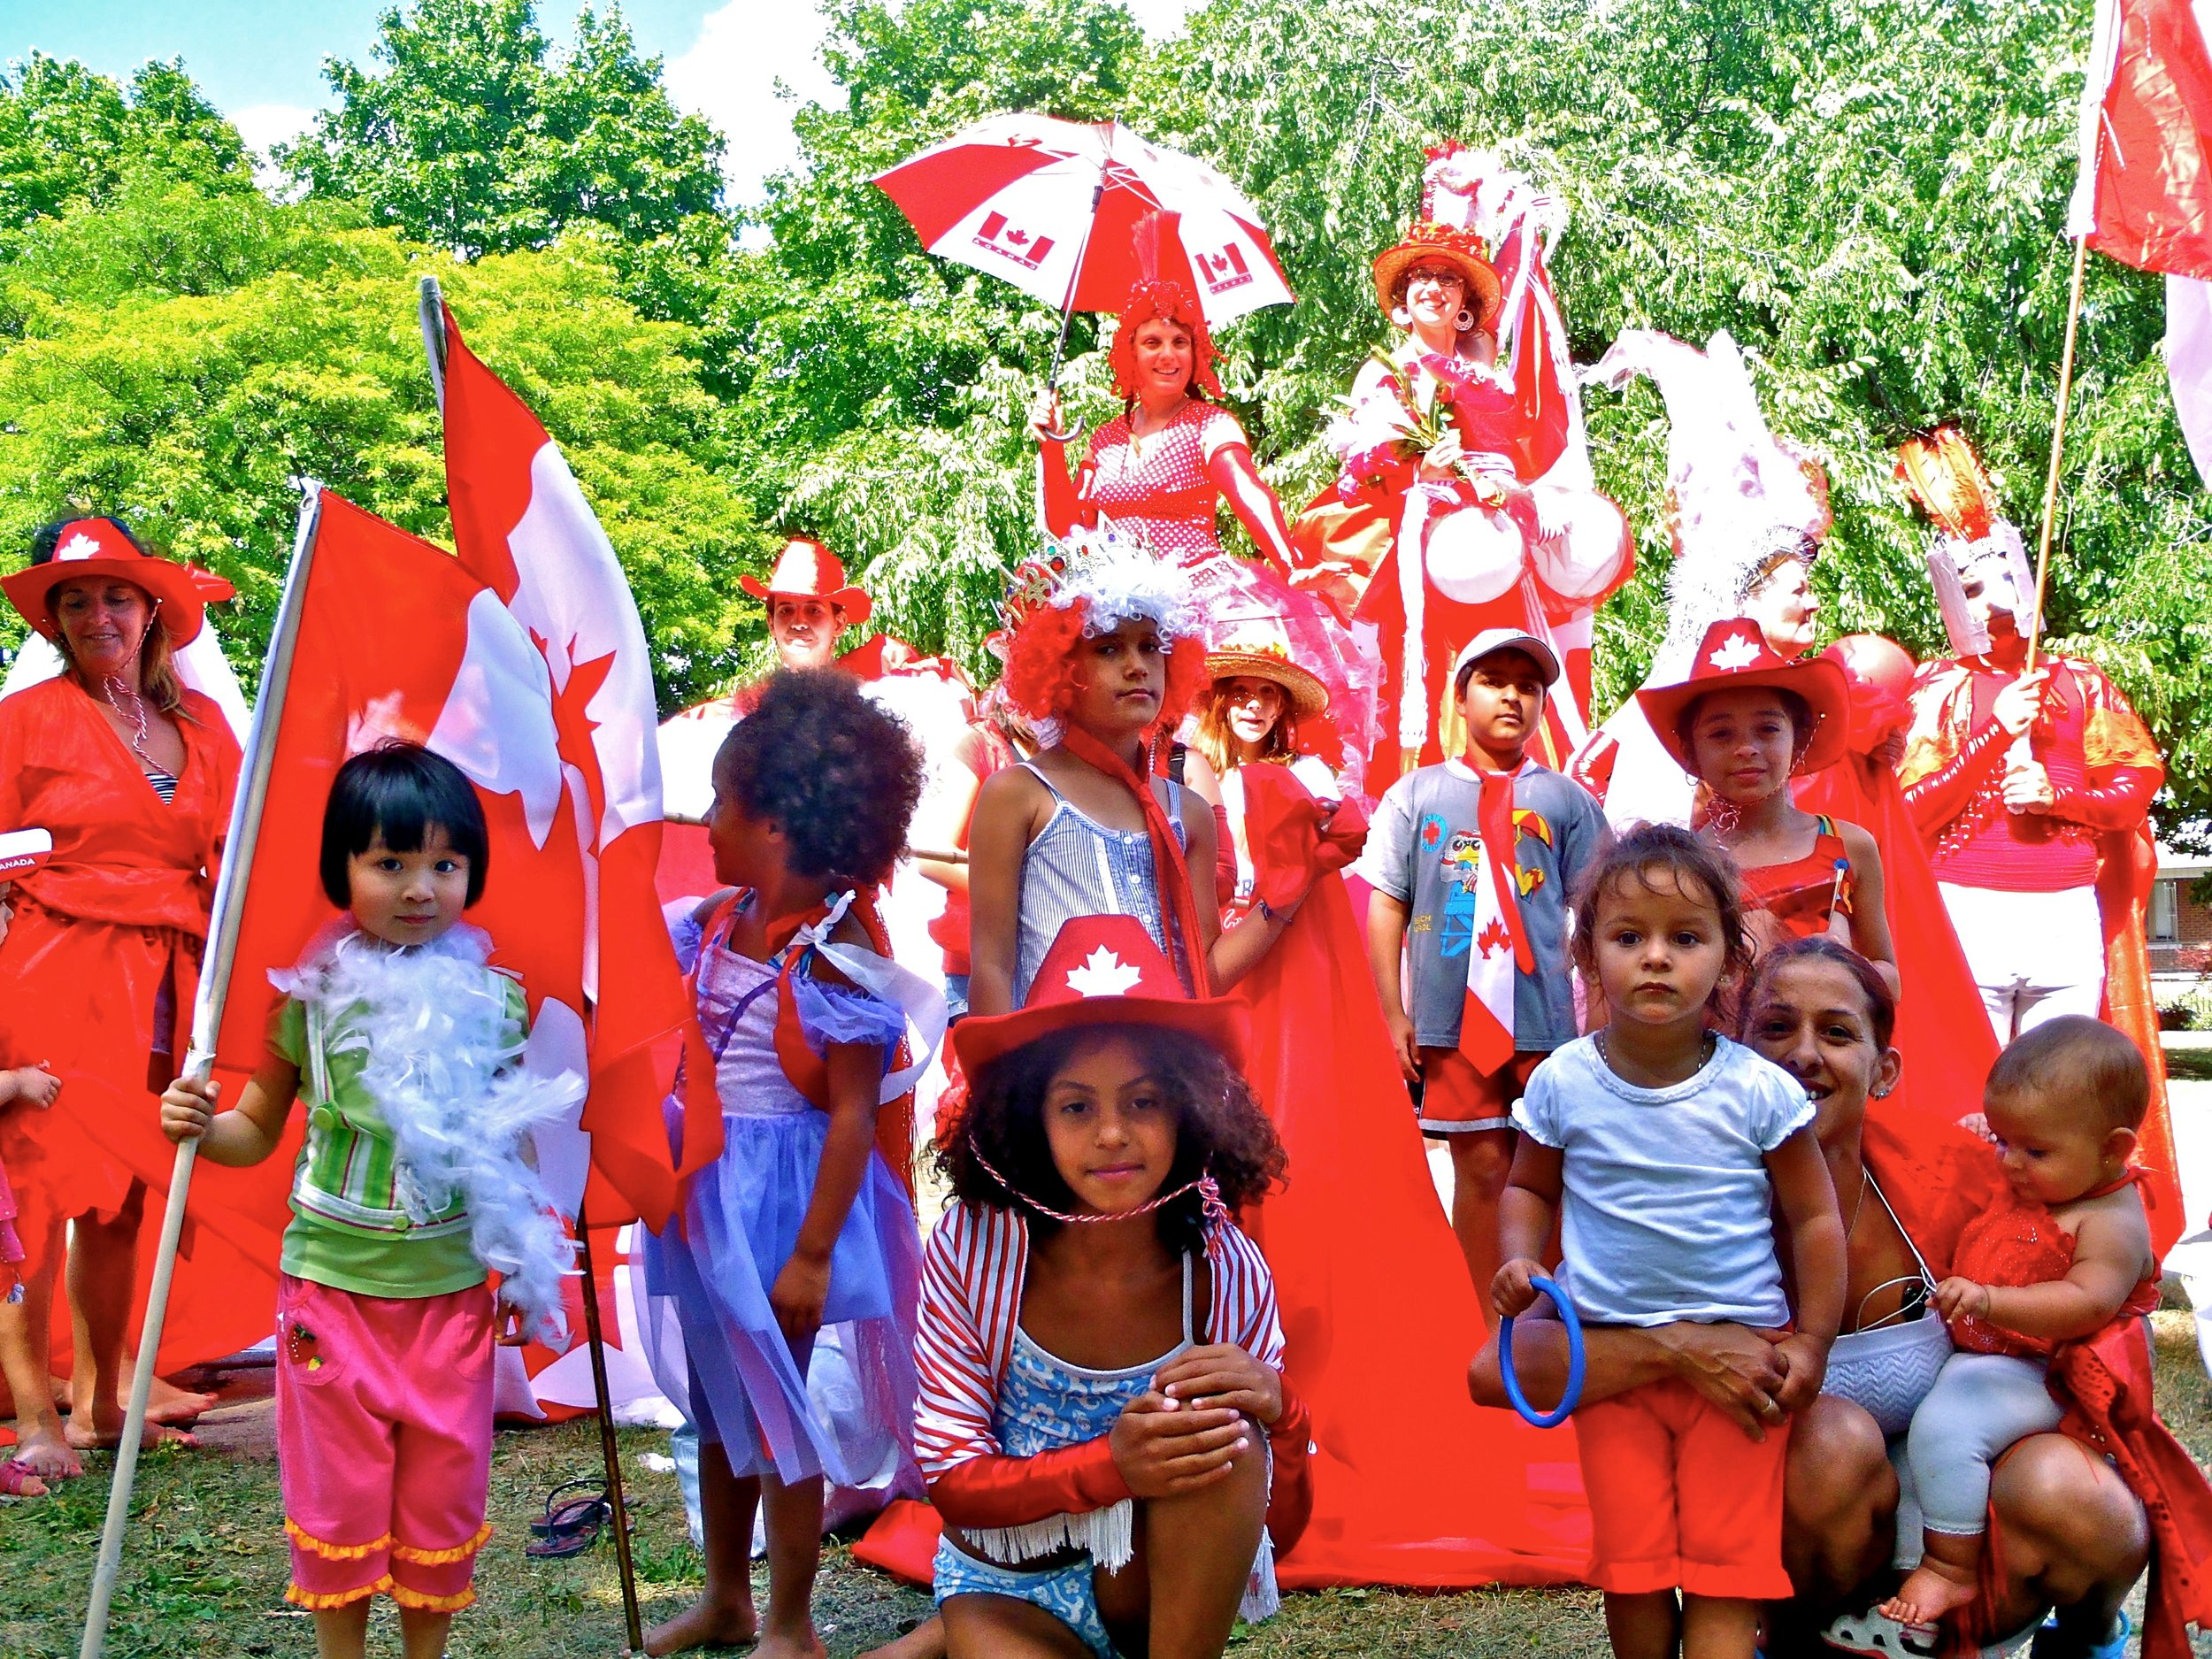 CanadaDay2012ParadePeople.jpg